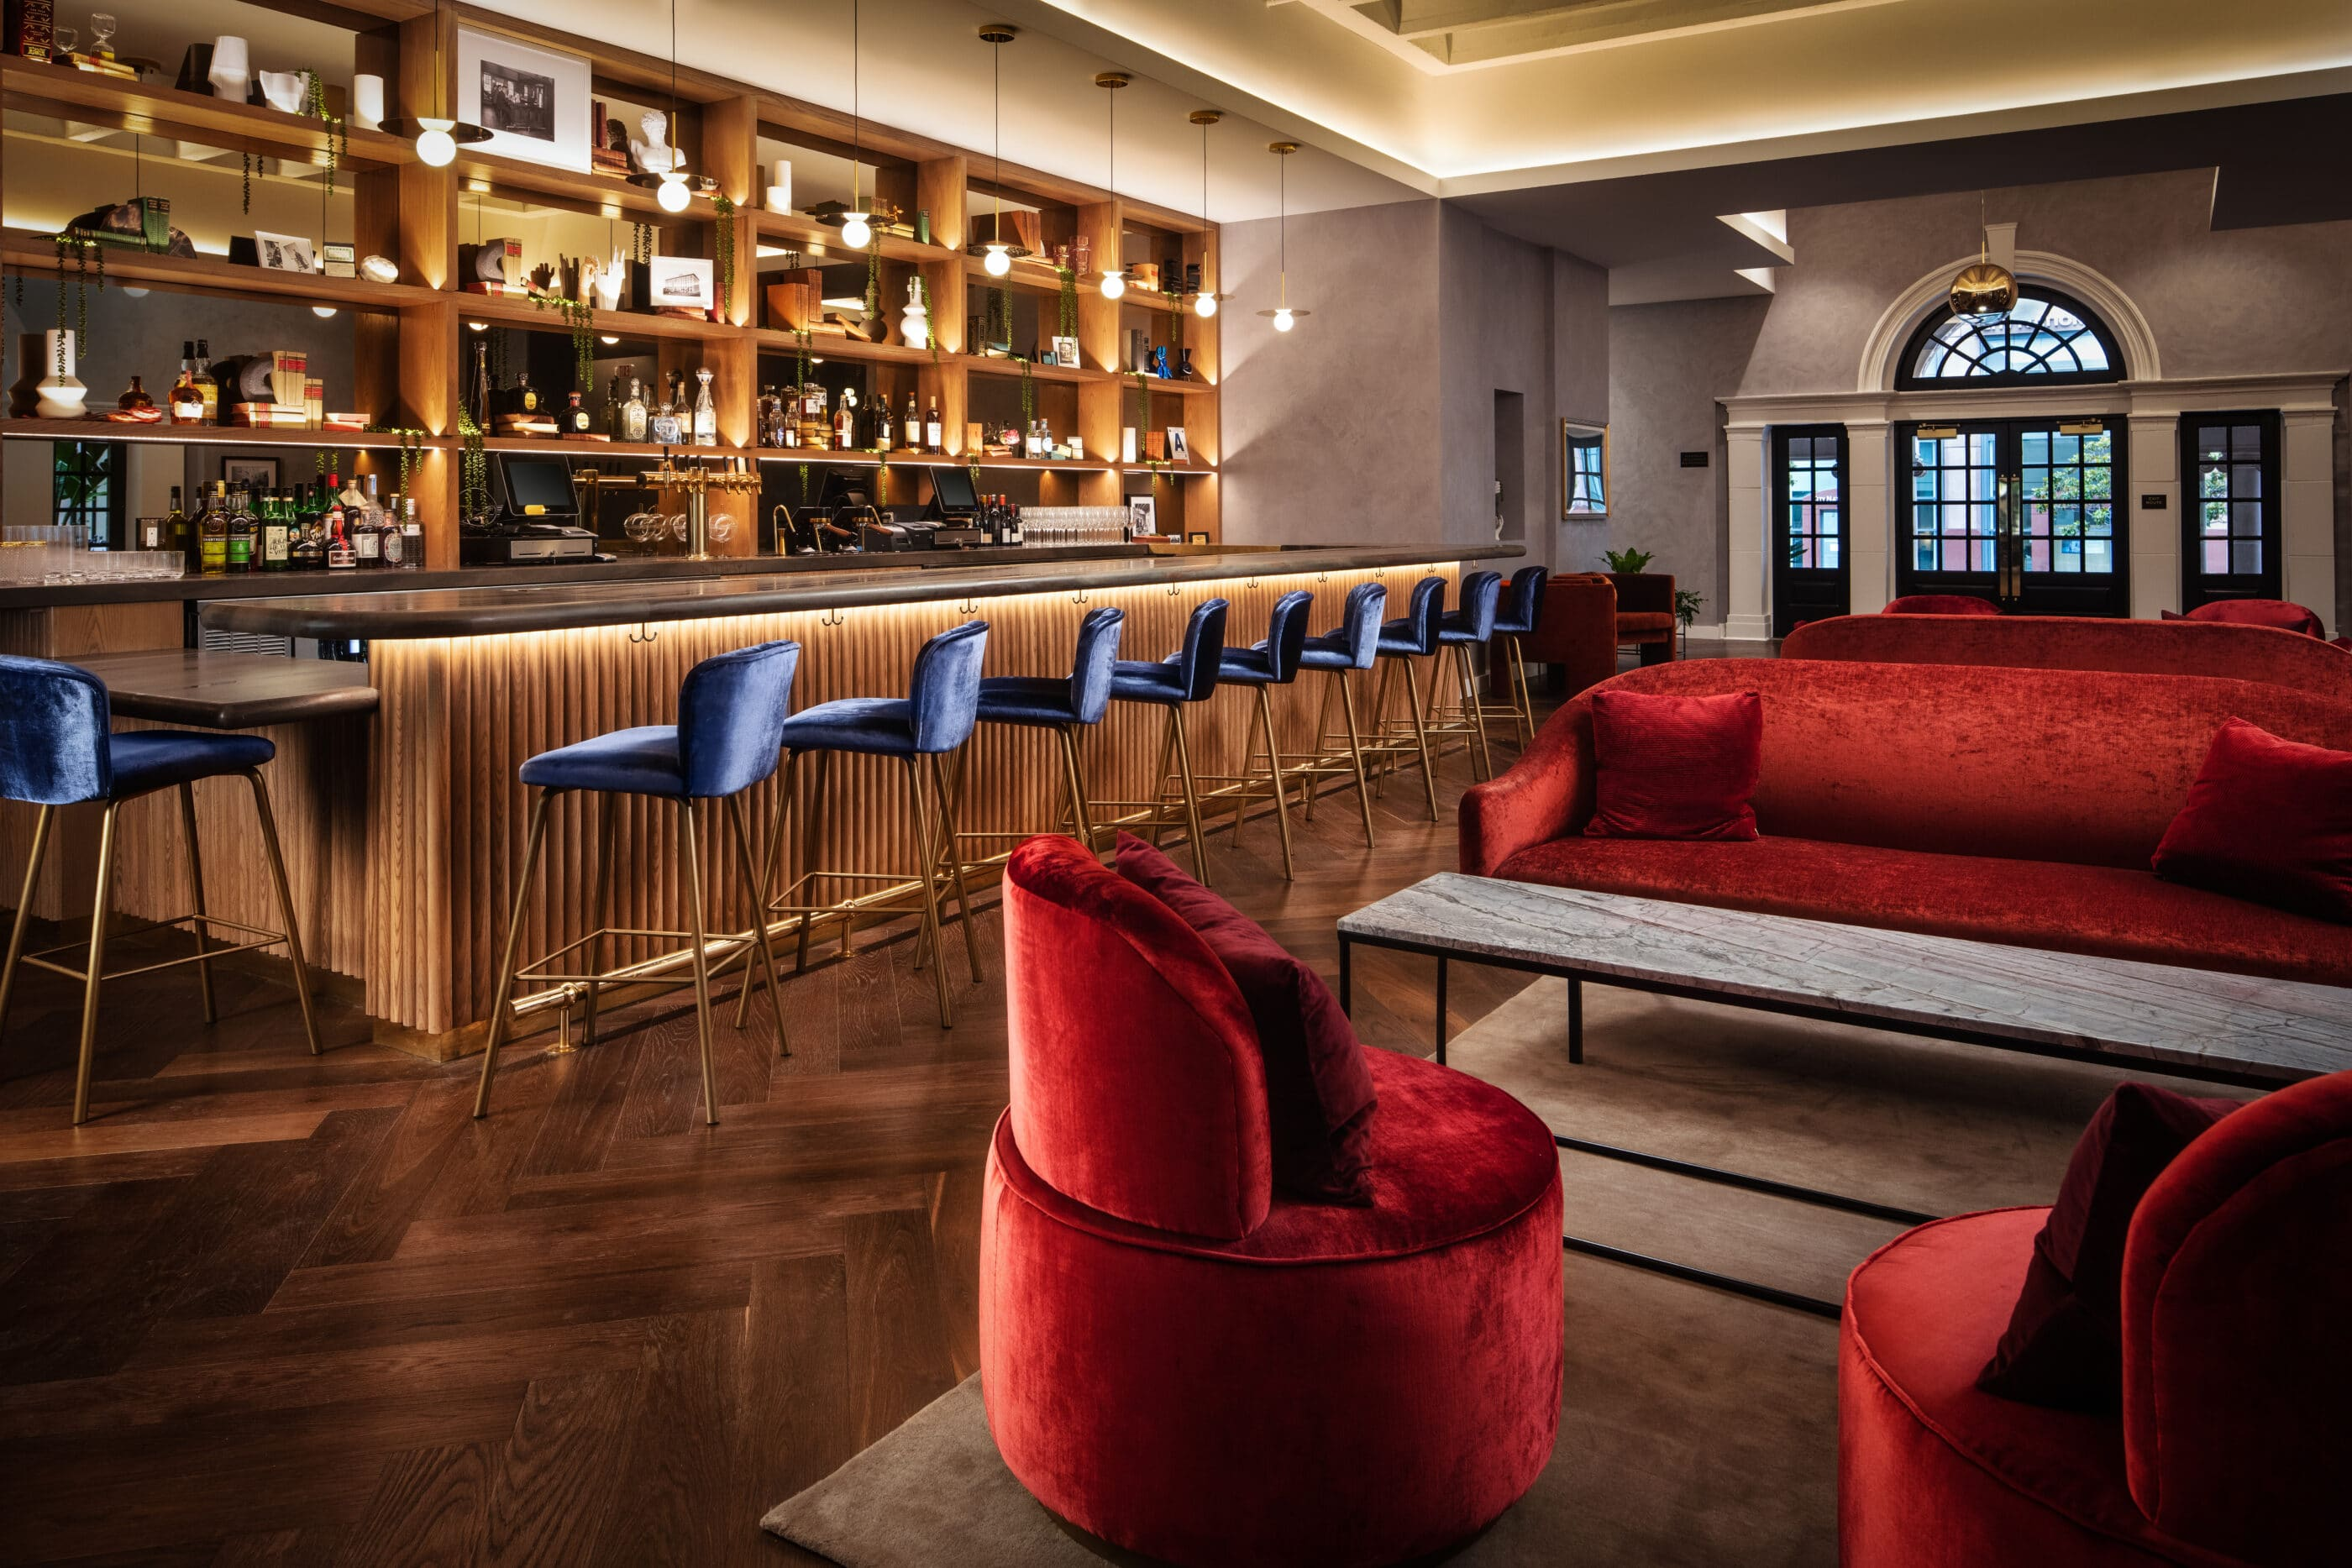 Red velvet couches and blue barstools in The Guild Bar.